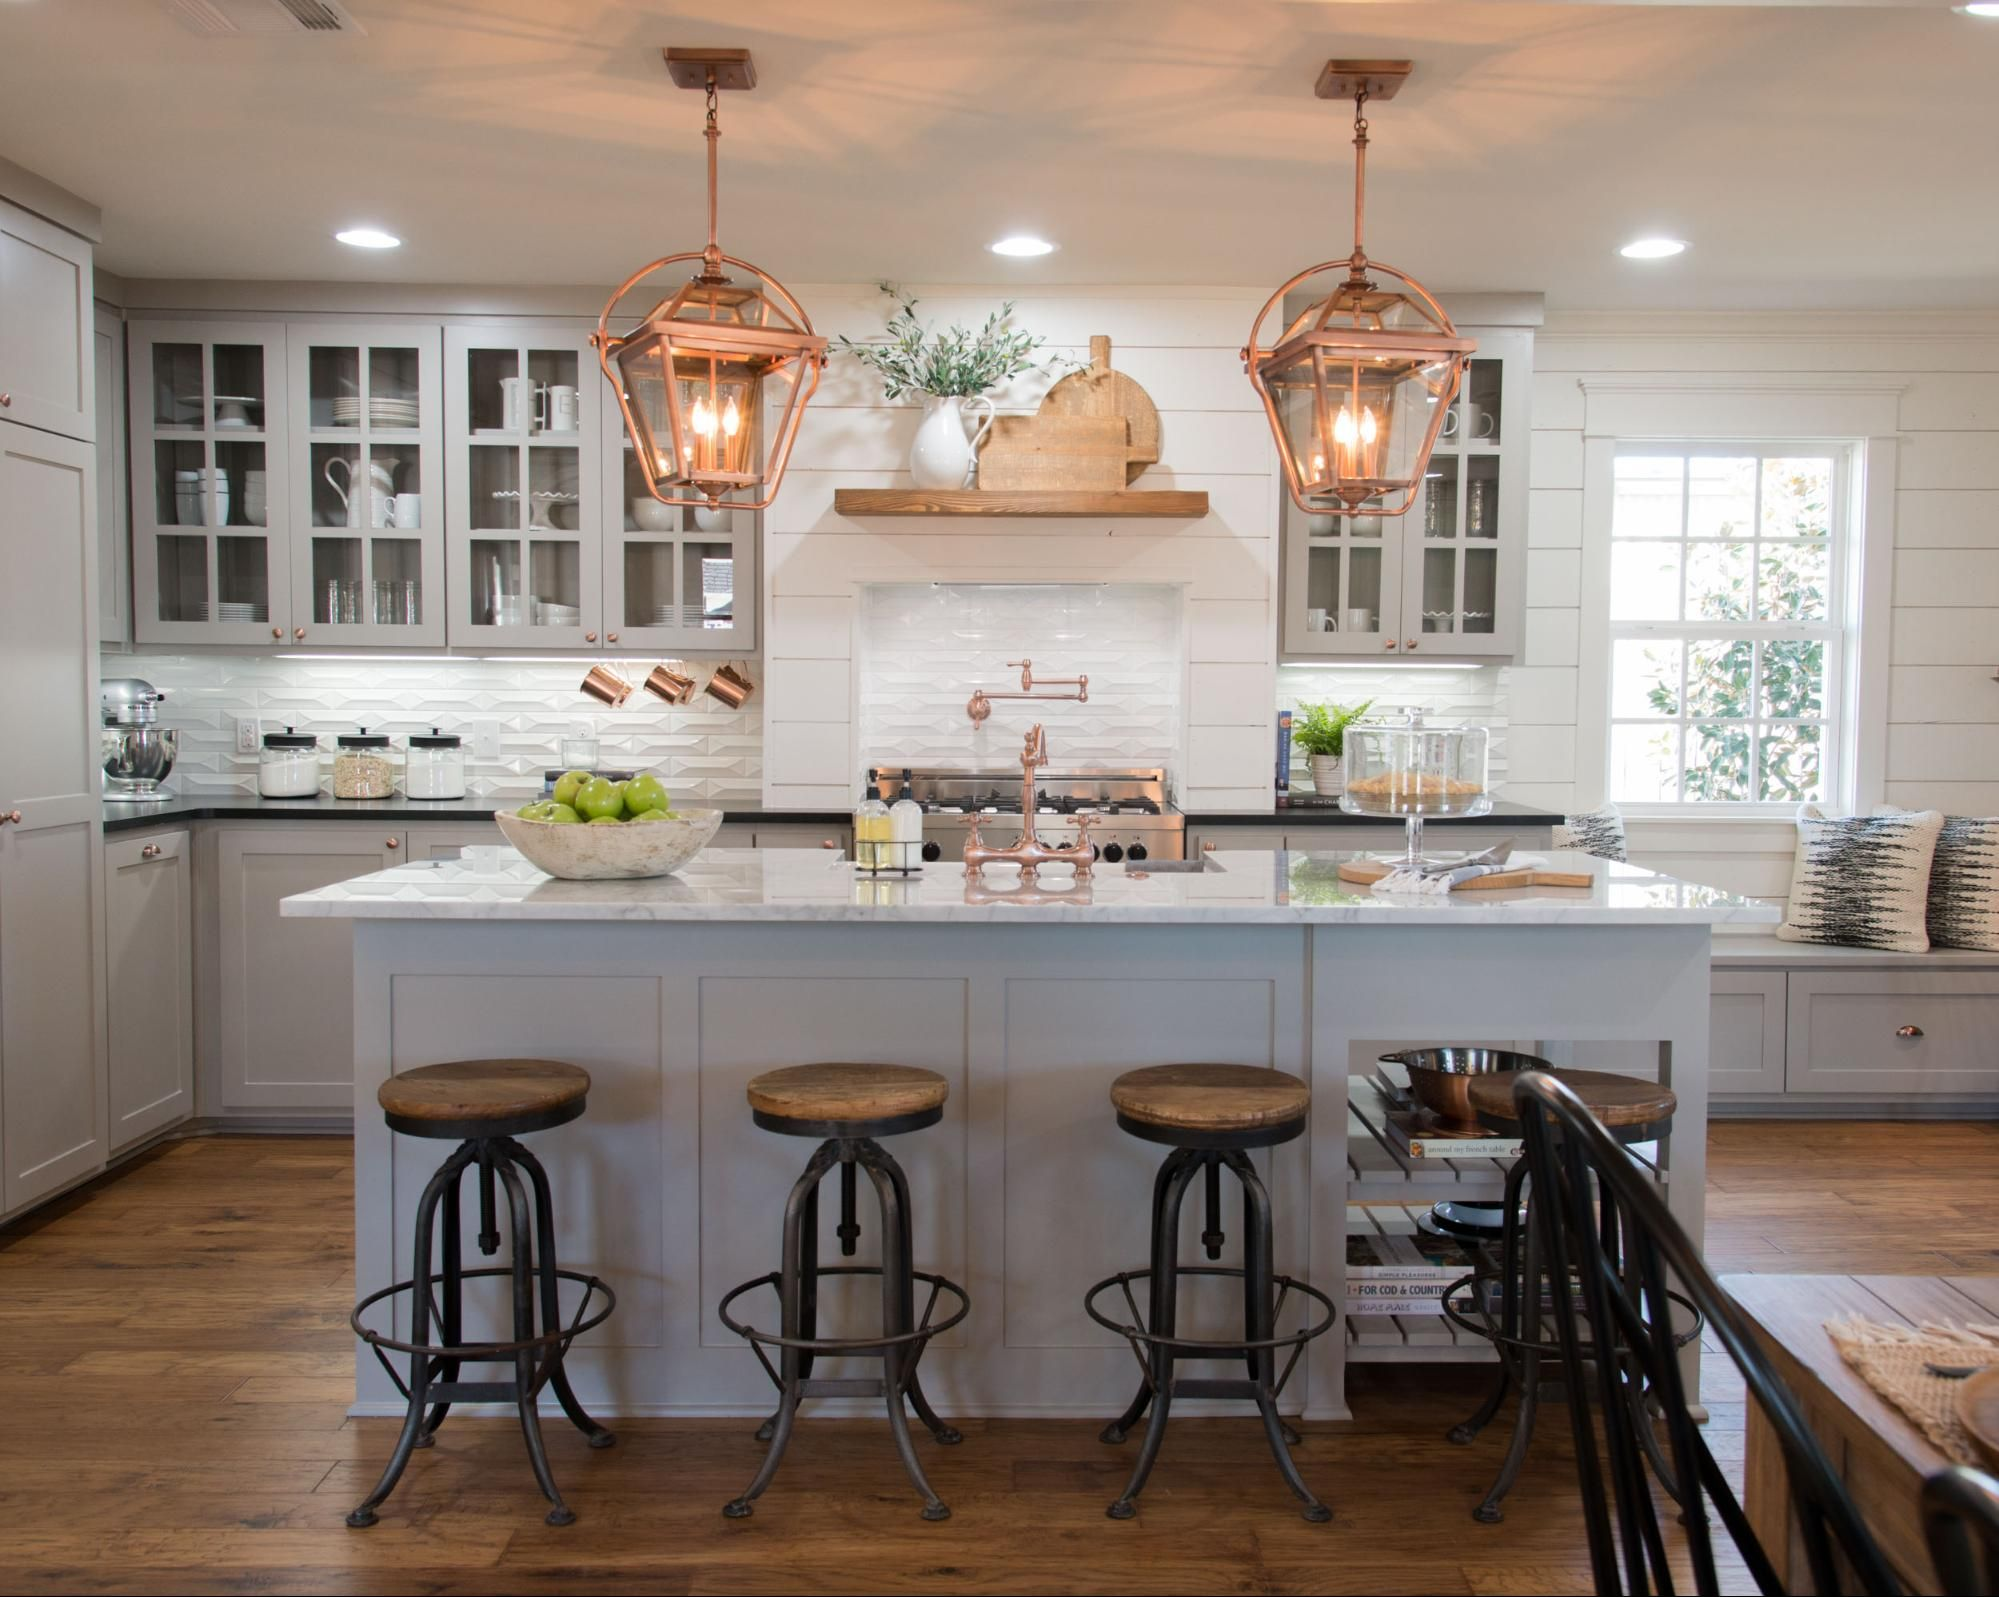 Copper Kitchen Lights 17 Best Ideas About Copper Light Fixture On Pinterest Copper